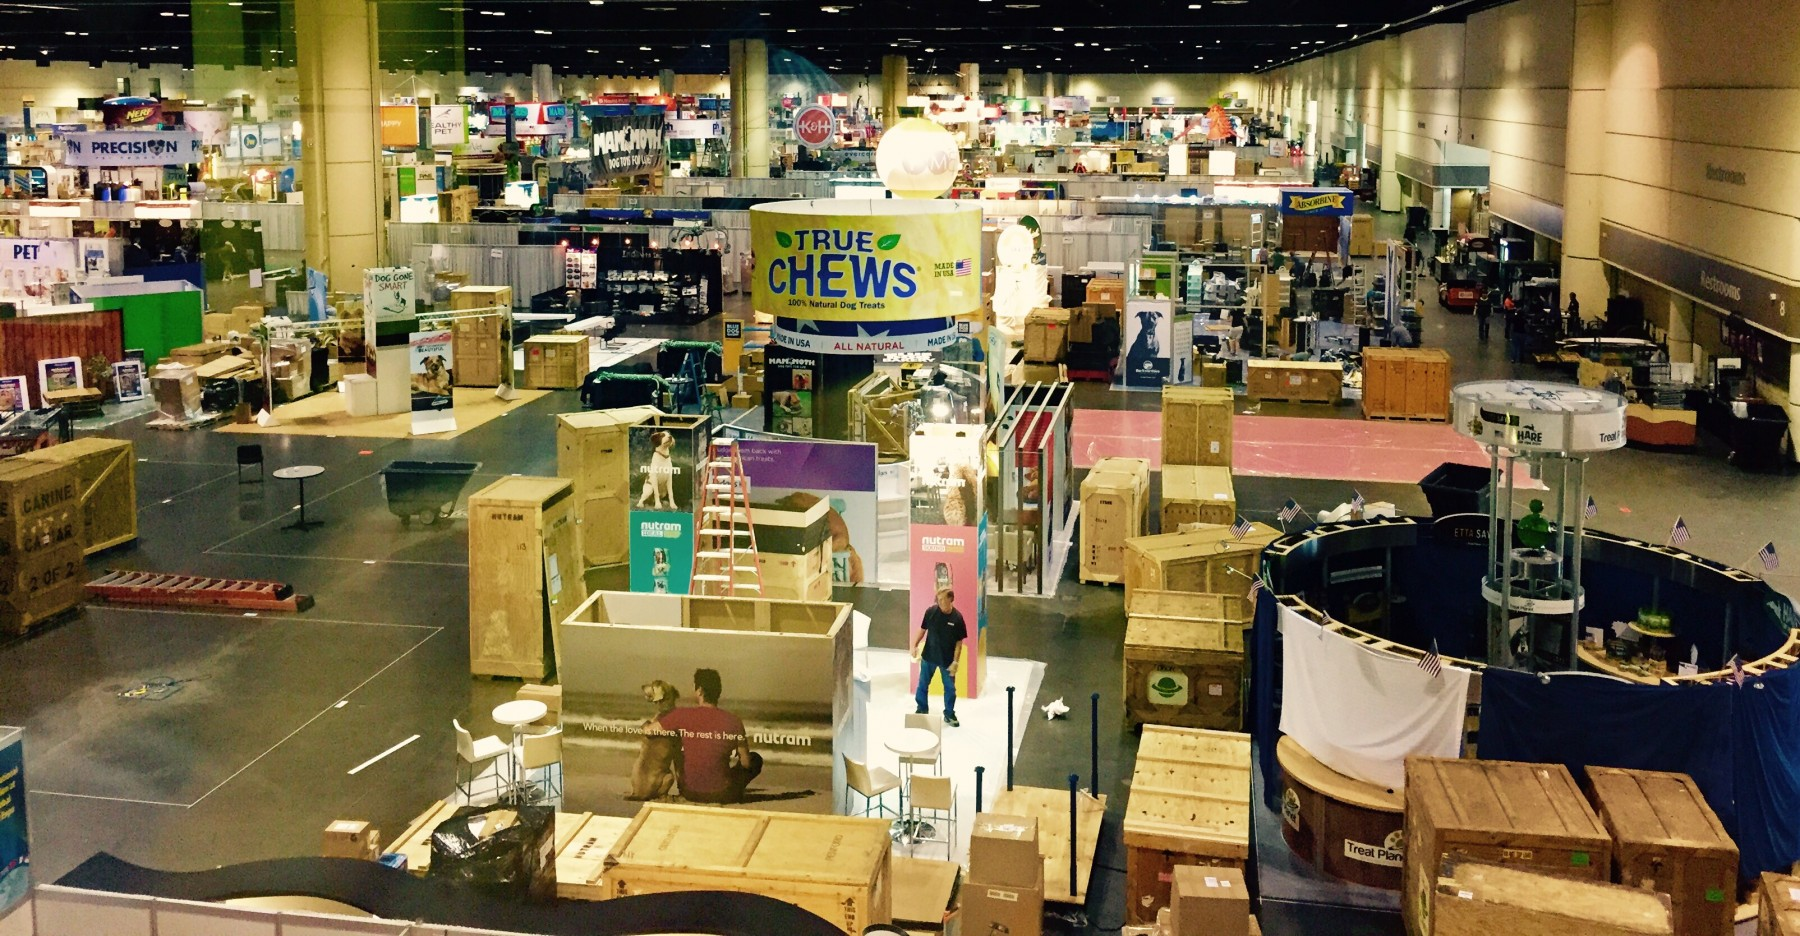 By tomorrow, the Global Pet Expo trade show floor  will be filled with the latest & greatest pet supplies and a ton of very excited pet store owners.